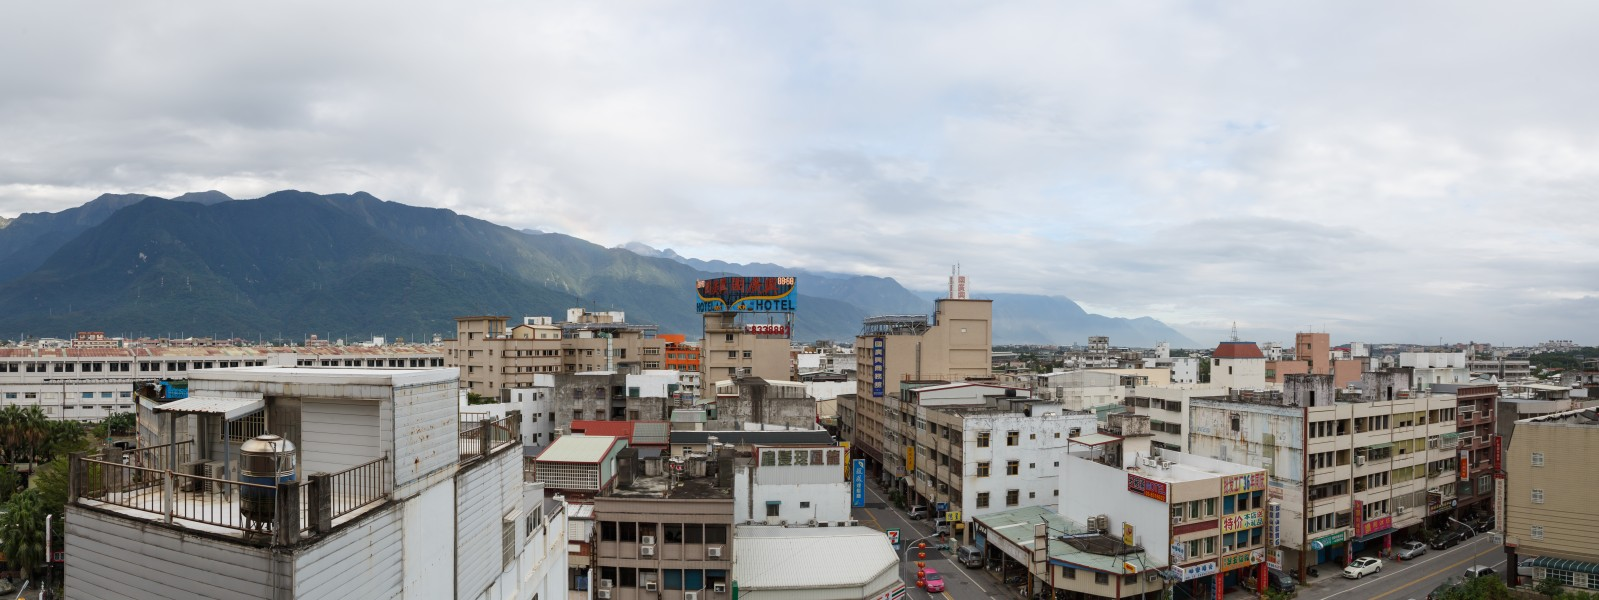 Hualien Taiwan cityscape with mountains